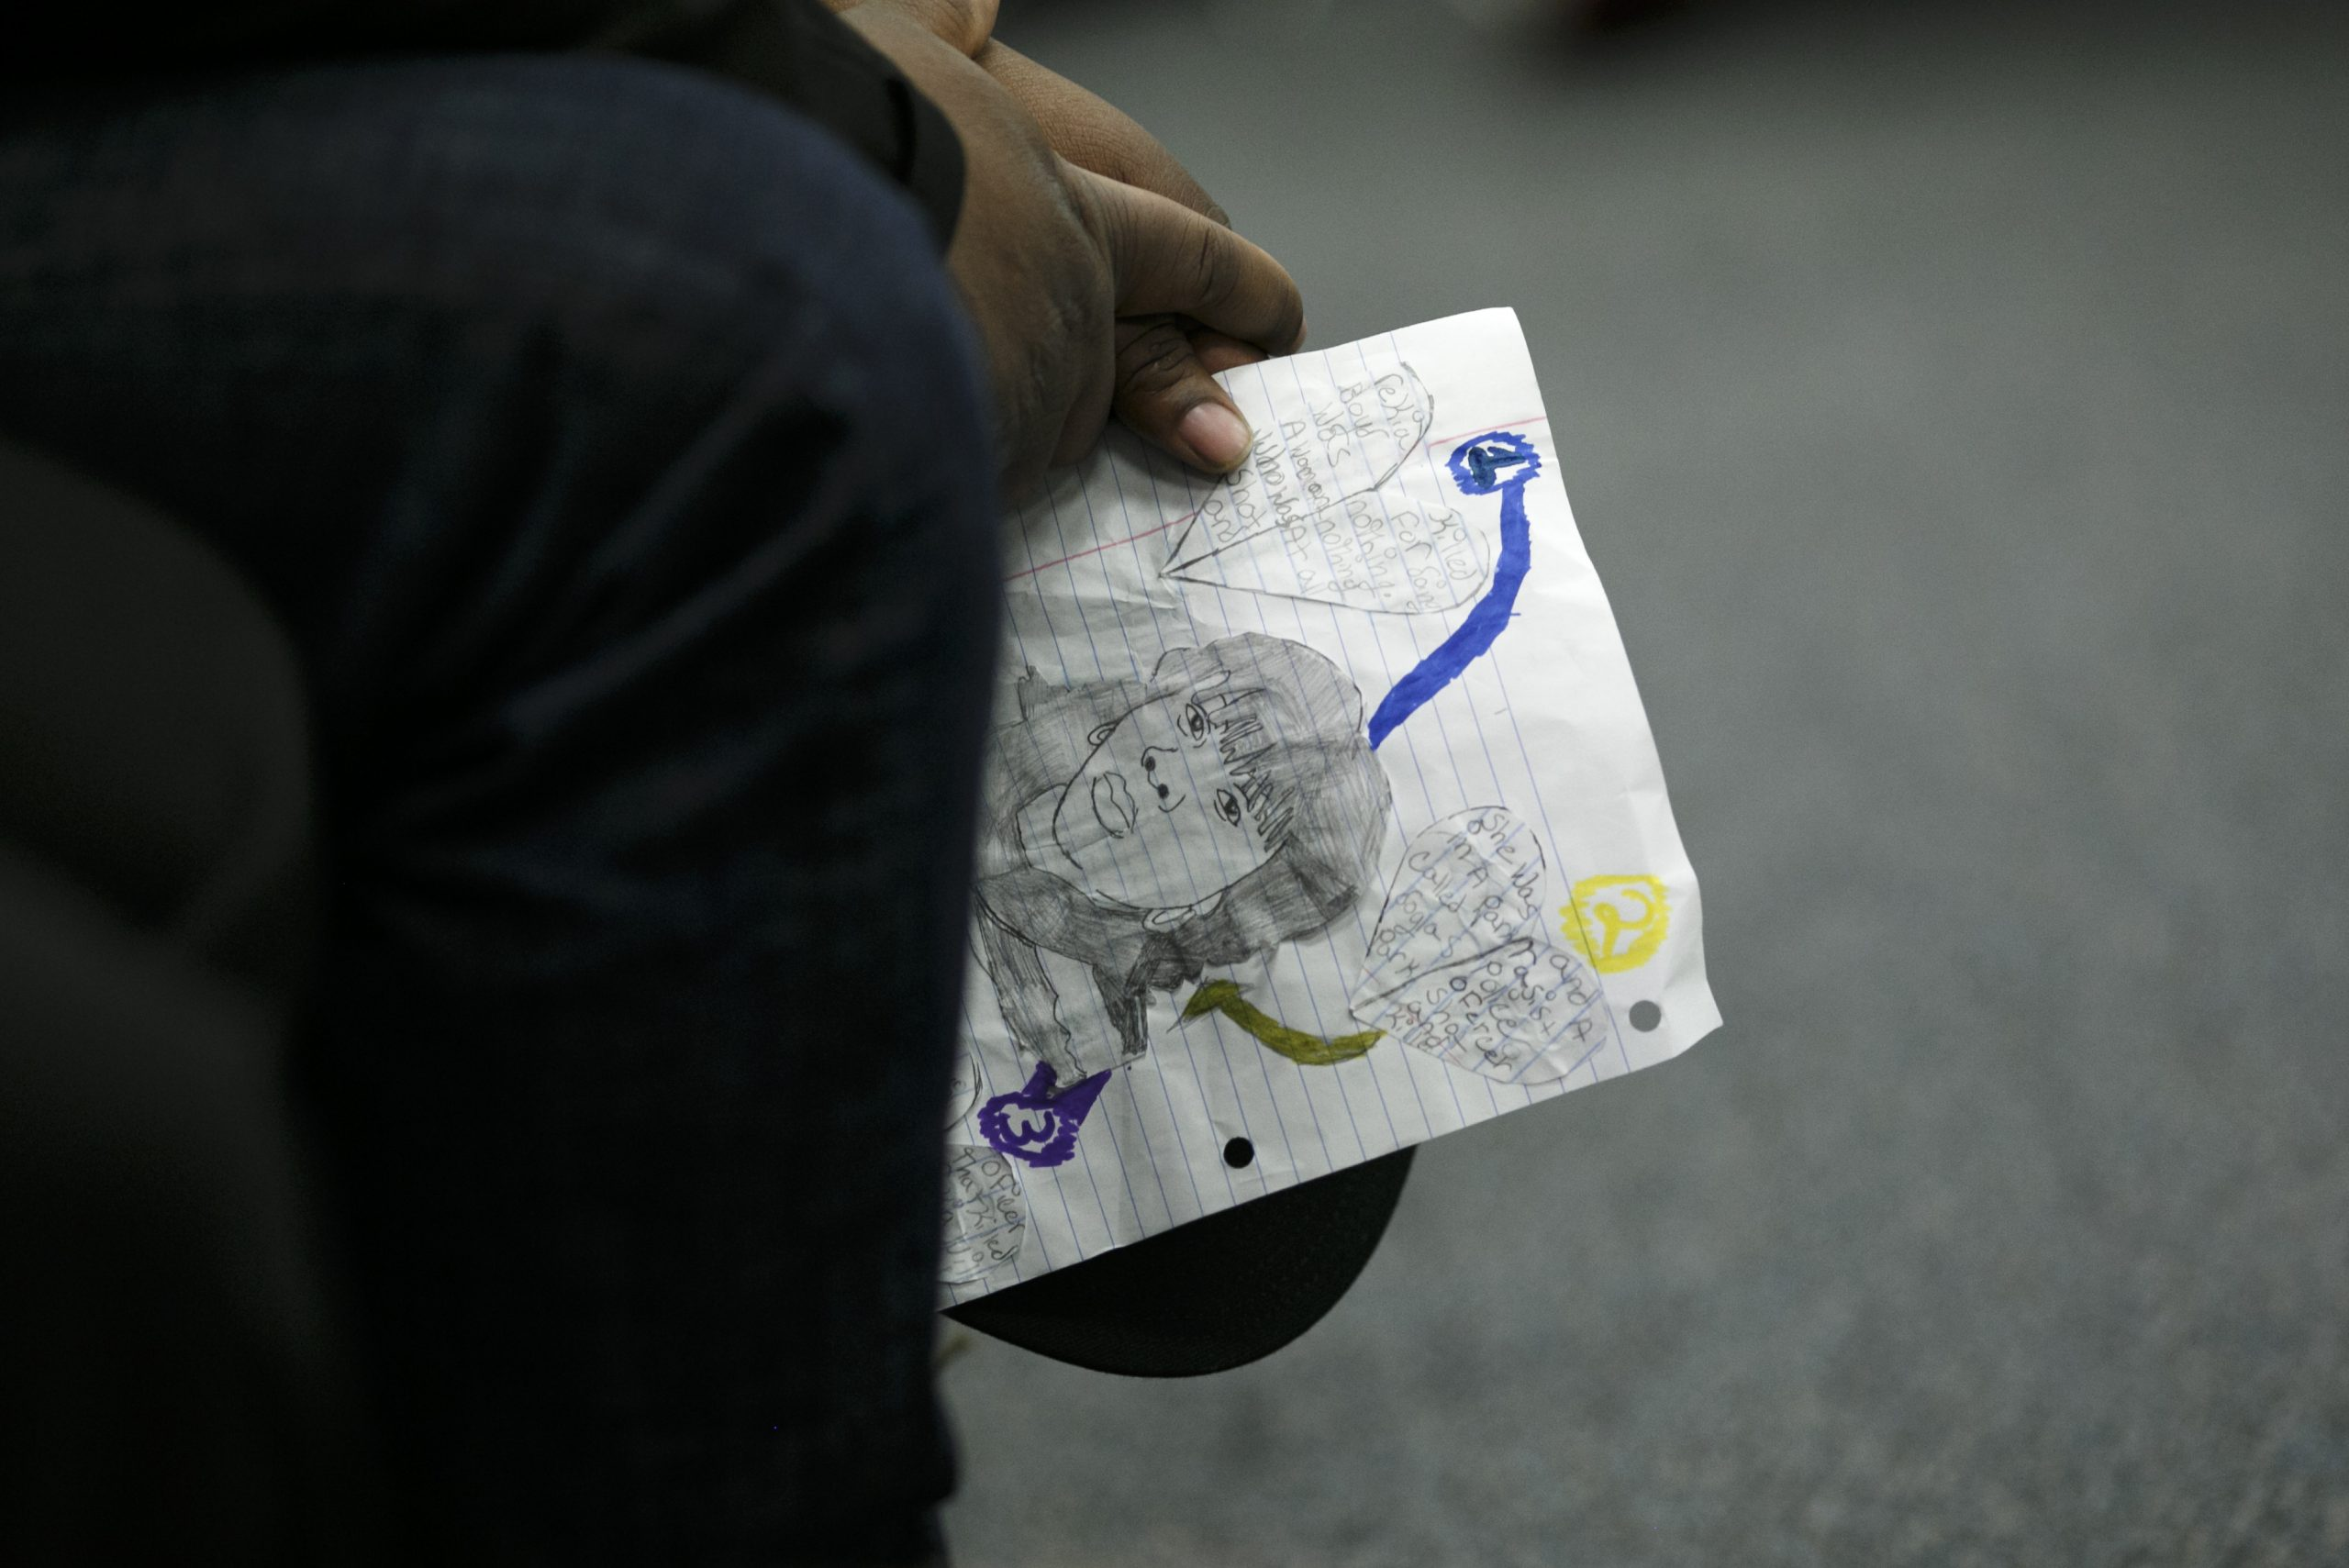 Martinez Sutton holds an illustration of his slain sister, Rekia Boyd, during the November Police Board Meeting.